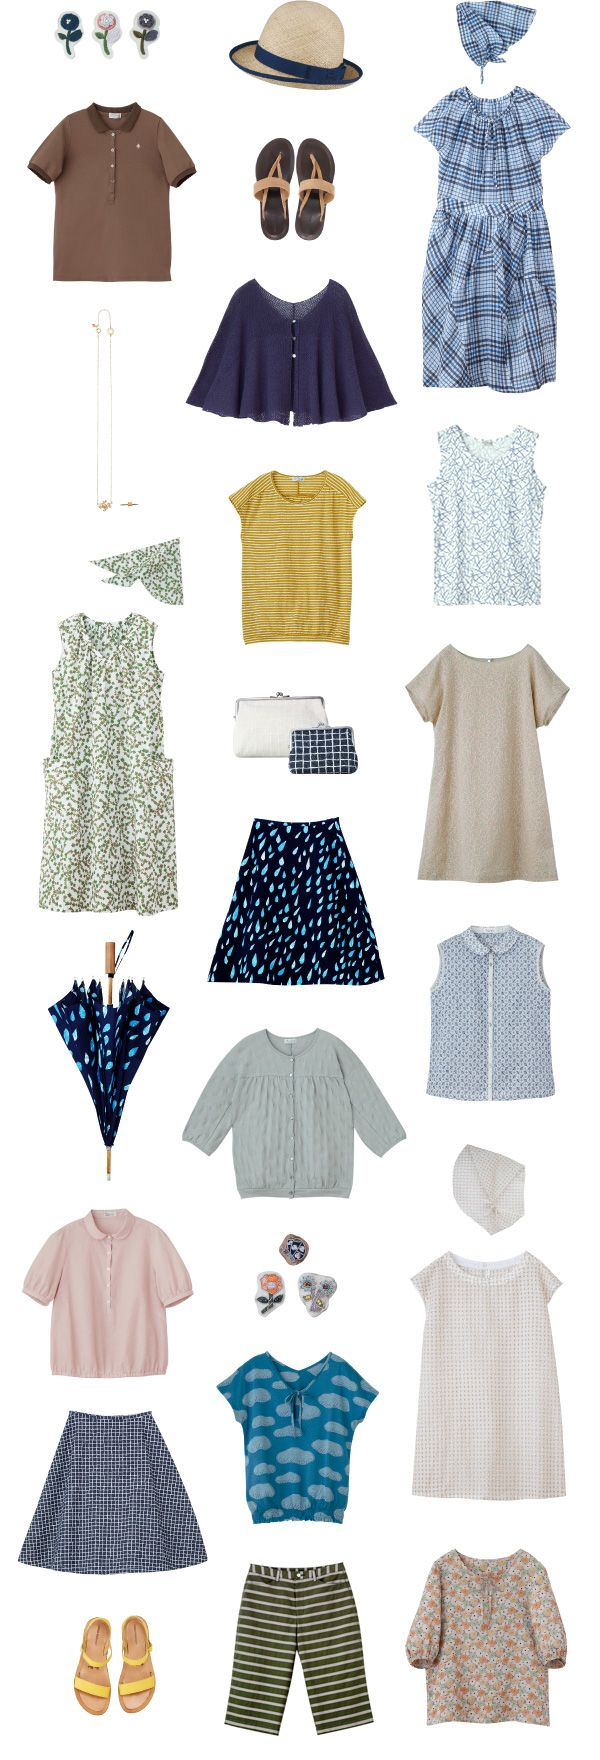 2011 Spring & Summer Collection - Pick Up| Sally Scott